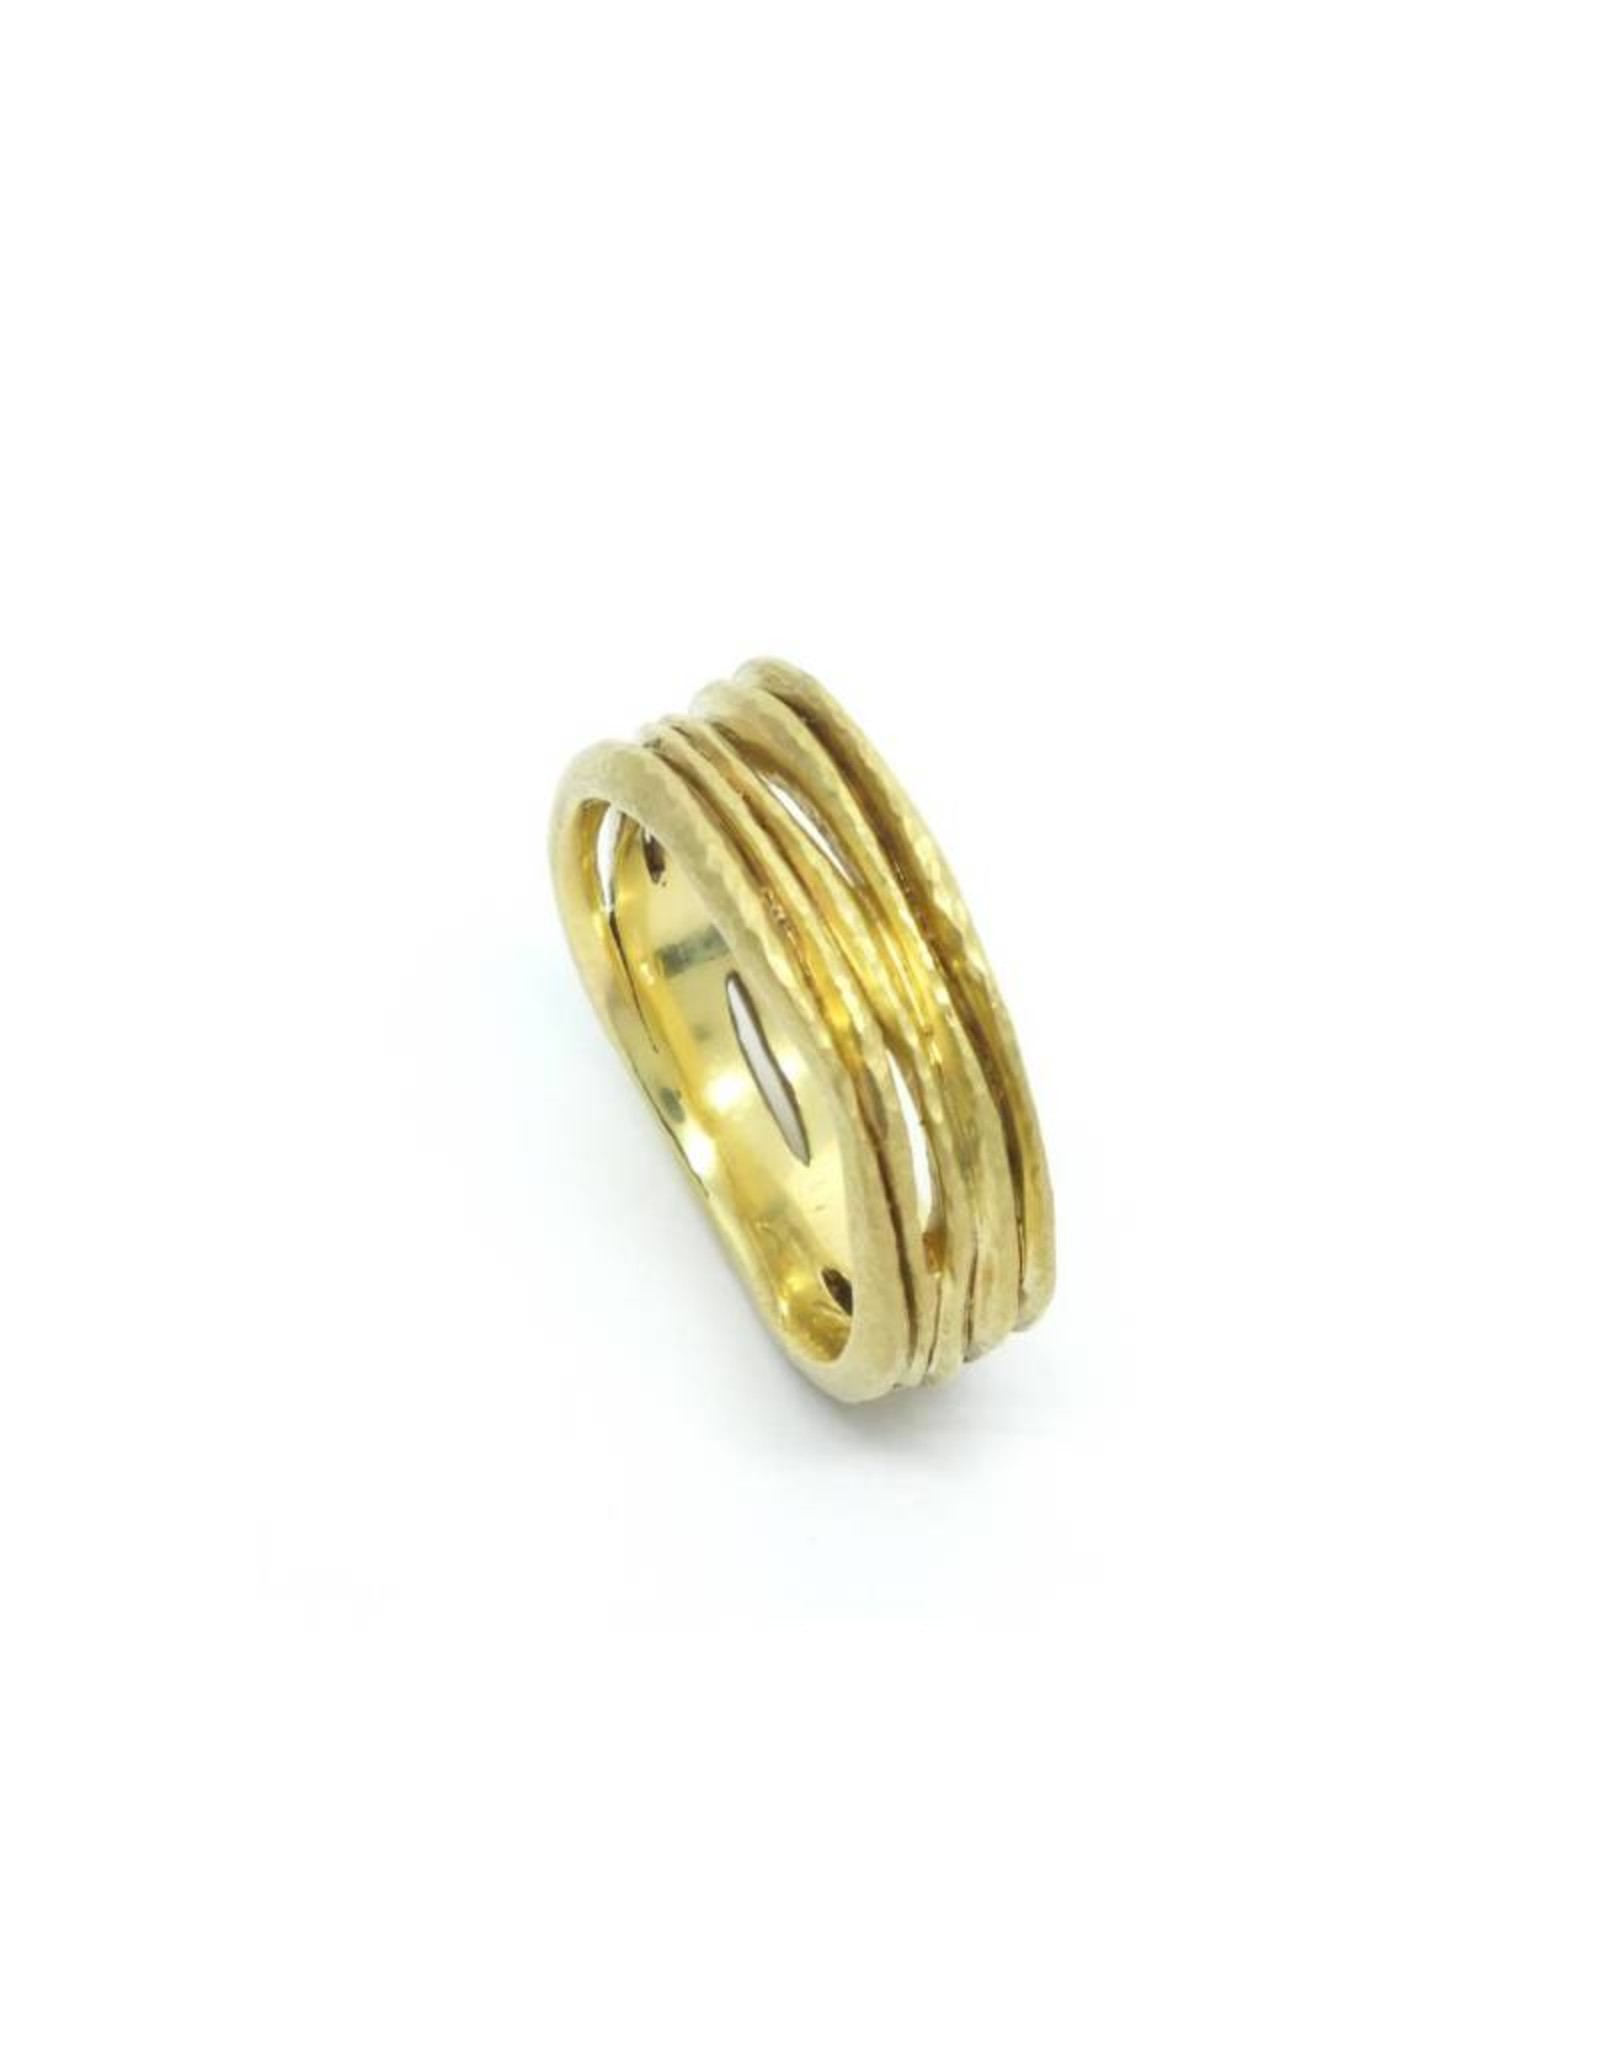 TAP by Todd Pownell Gold Wavy Ring with 5 Rows